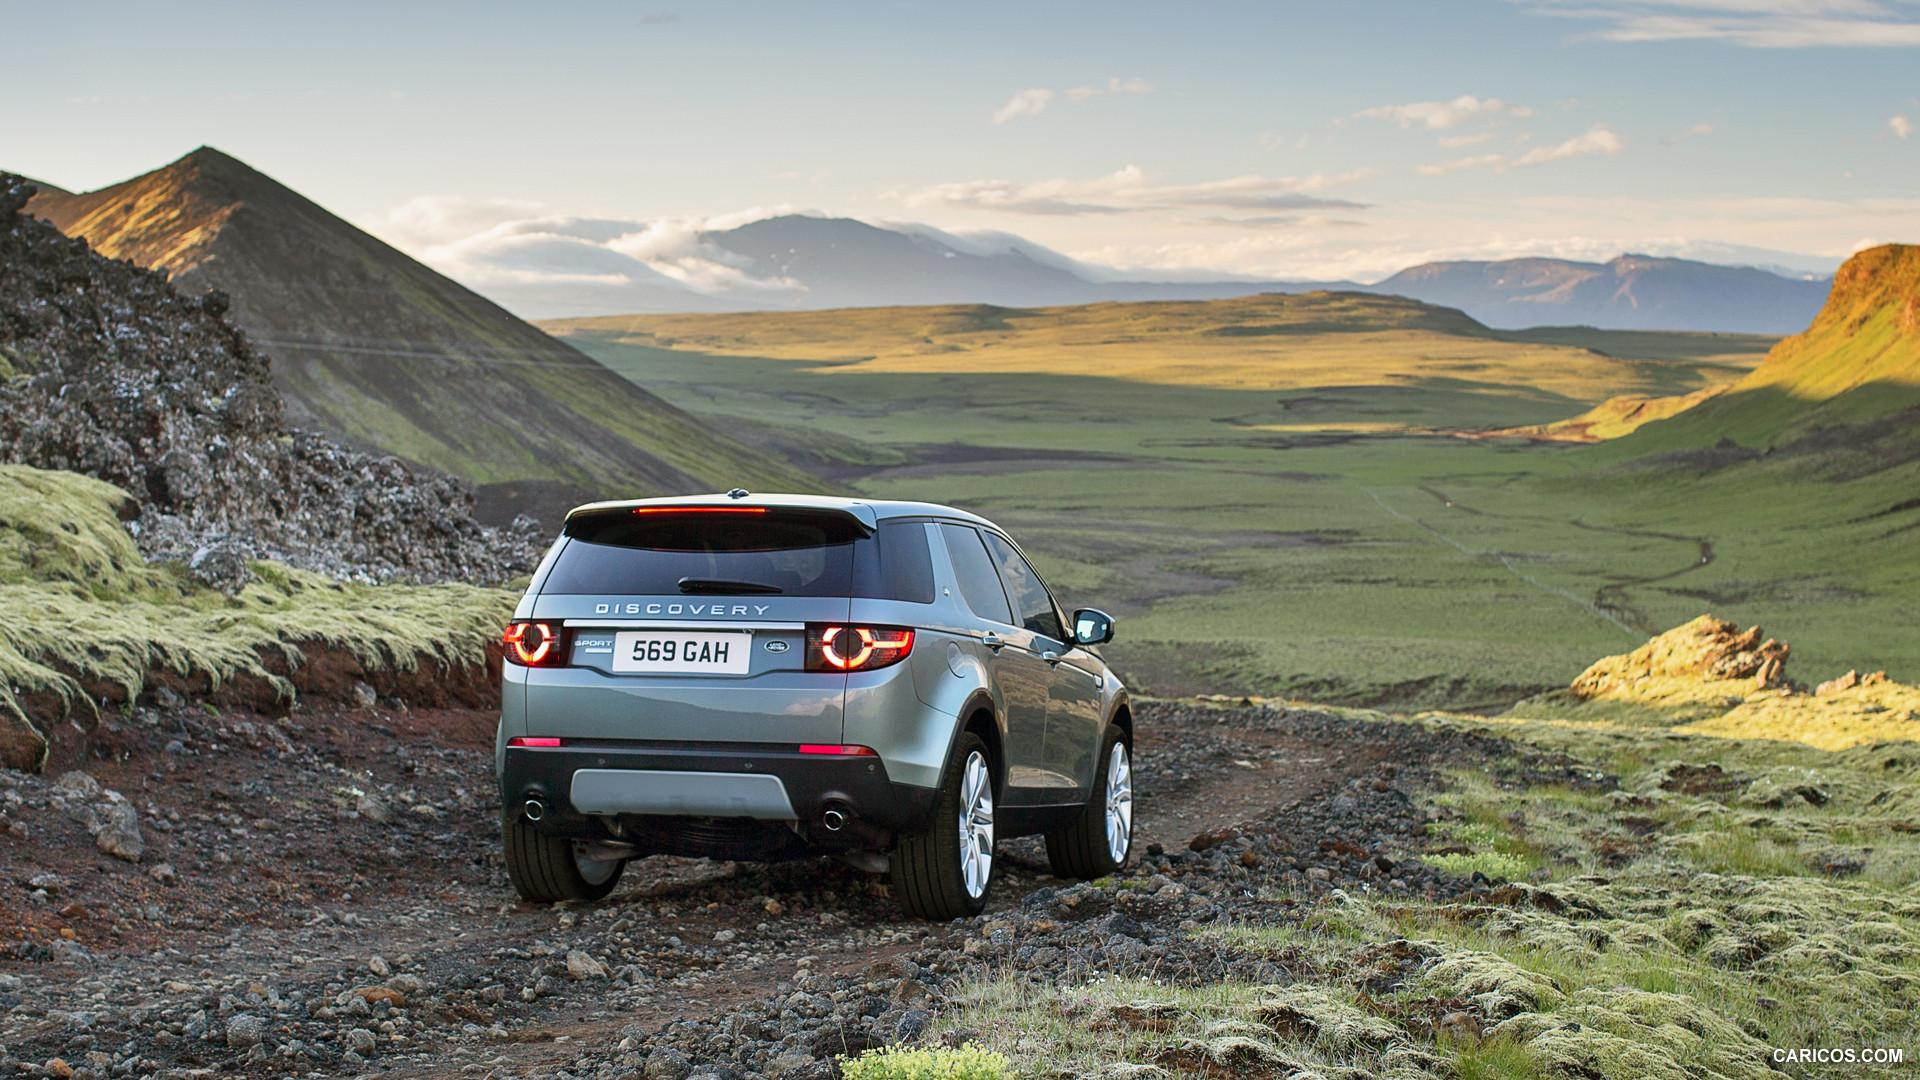 Wallpaper Land Rover Discovery Sport: Land Rover Discovery Sport Wallpapers